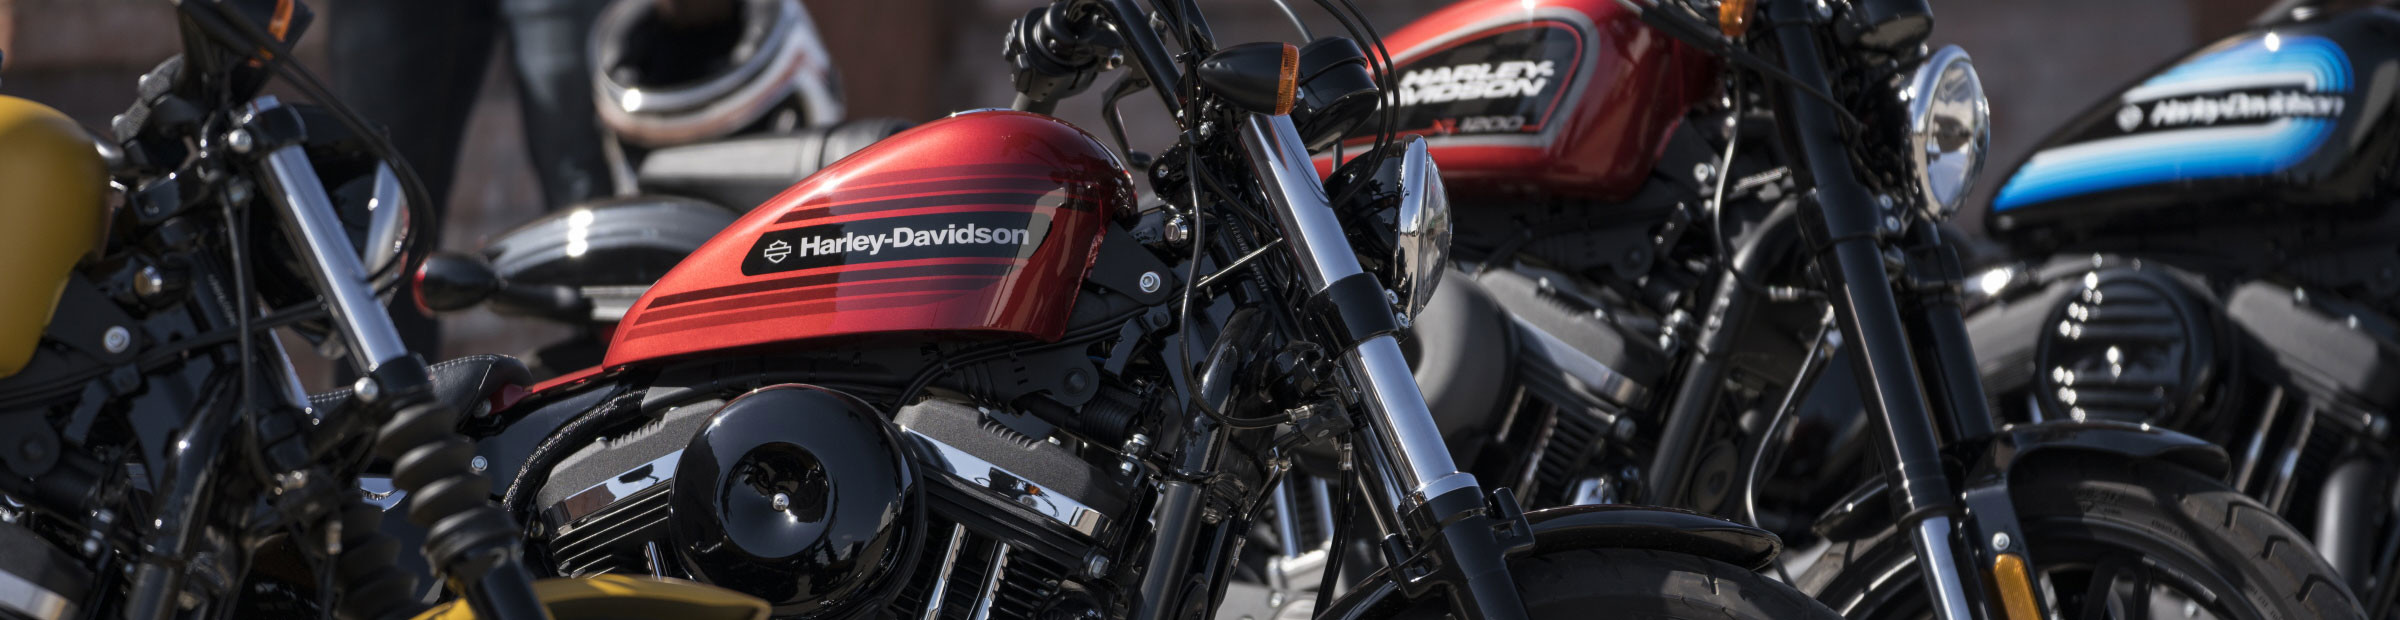 Bombshells at Harley-Davidson® in Allen Texas